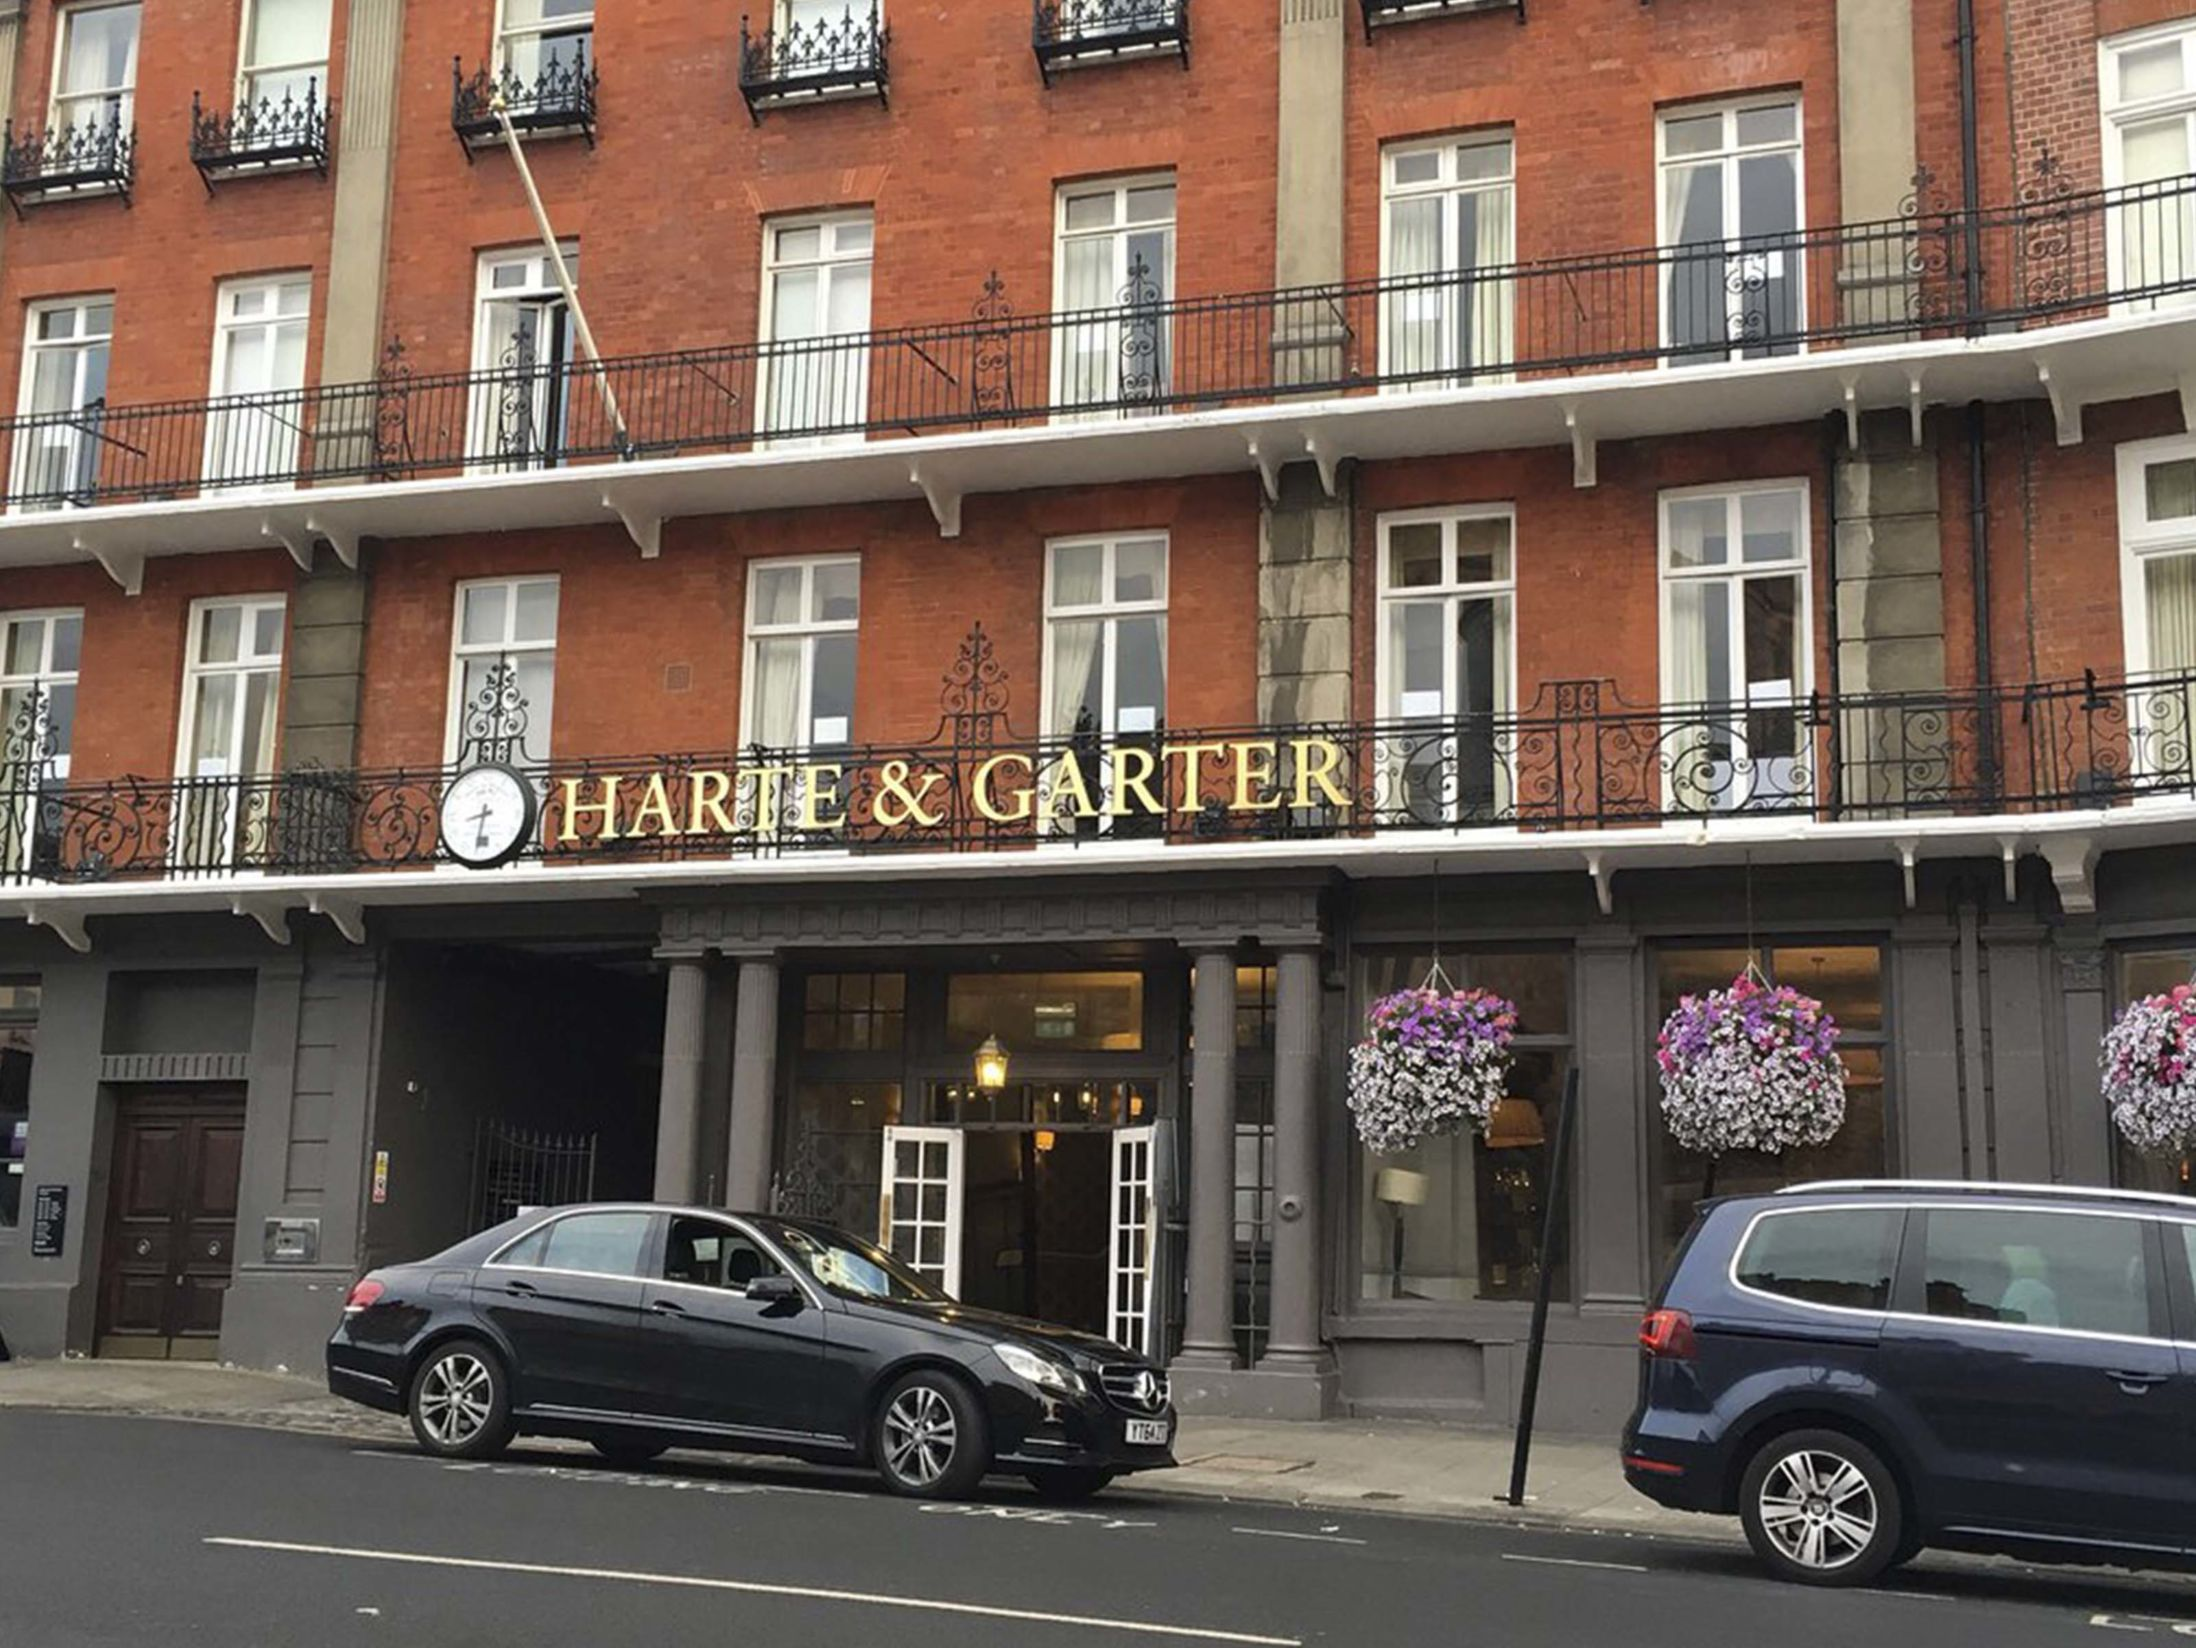 Cheap Hotels in Windsor - Clarion Collection Harte and Garter Hotel & Spa